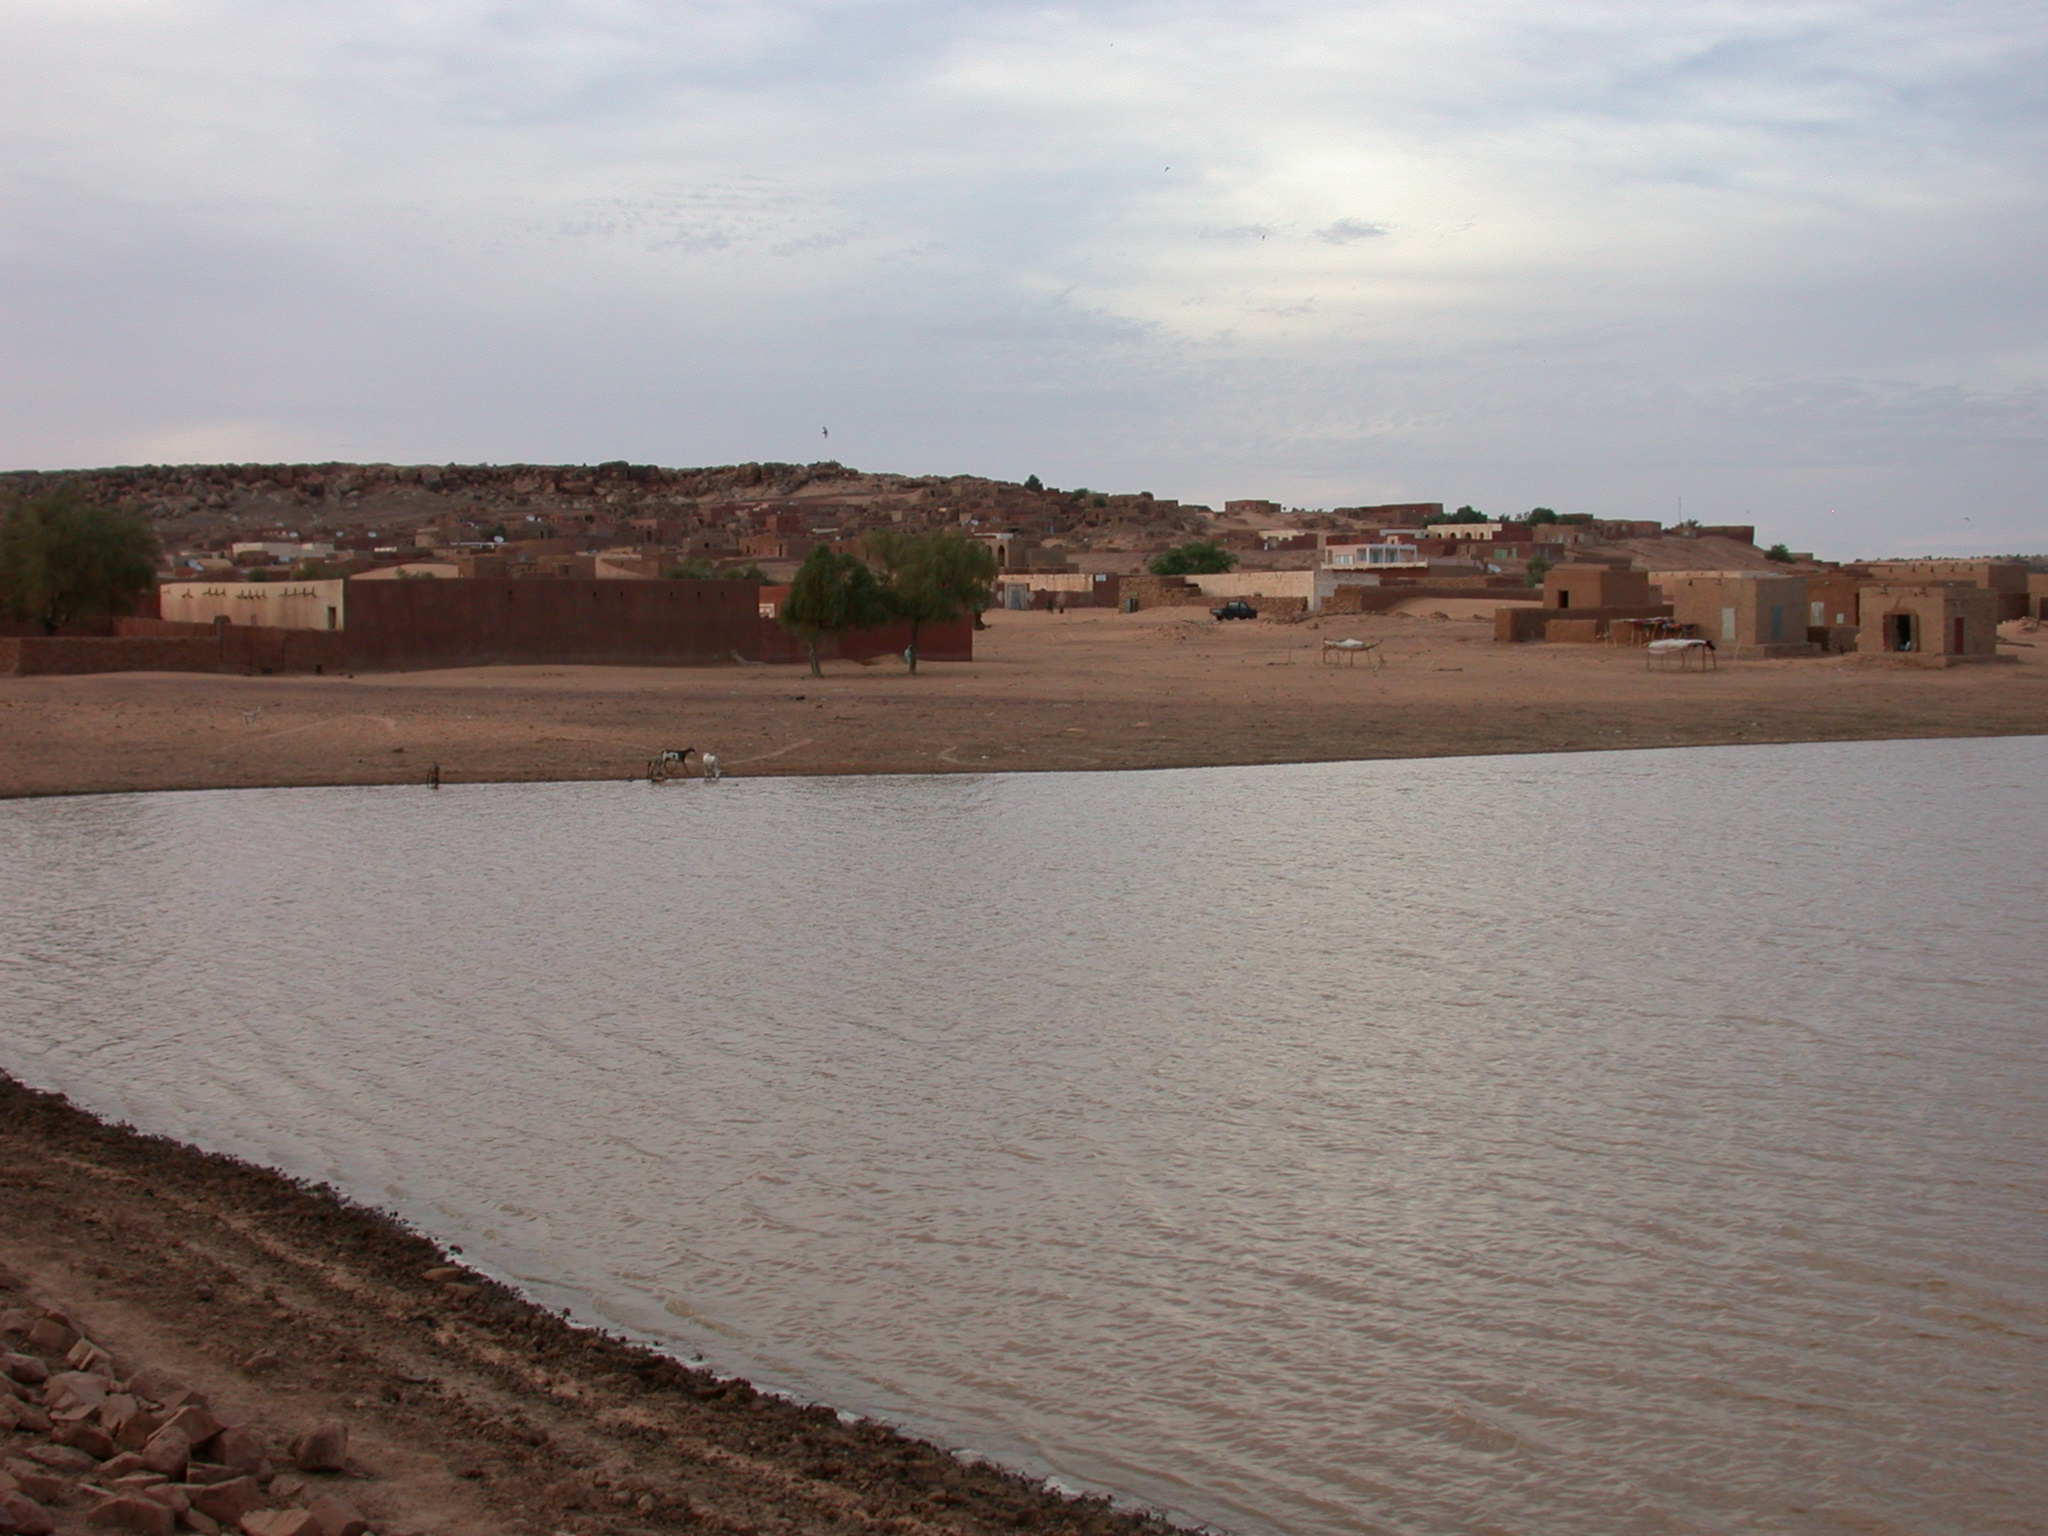 View of City From Reservoir, Oualata, Mauritania